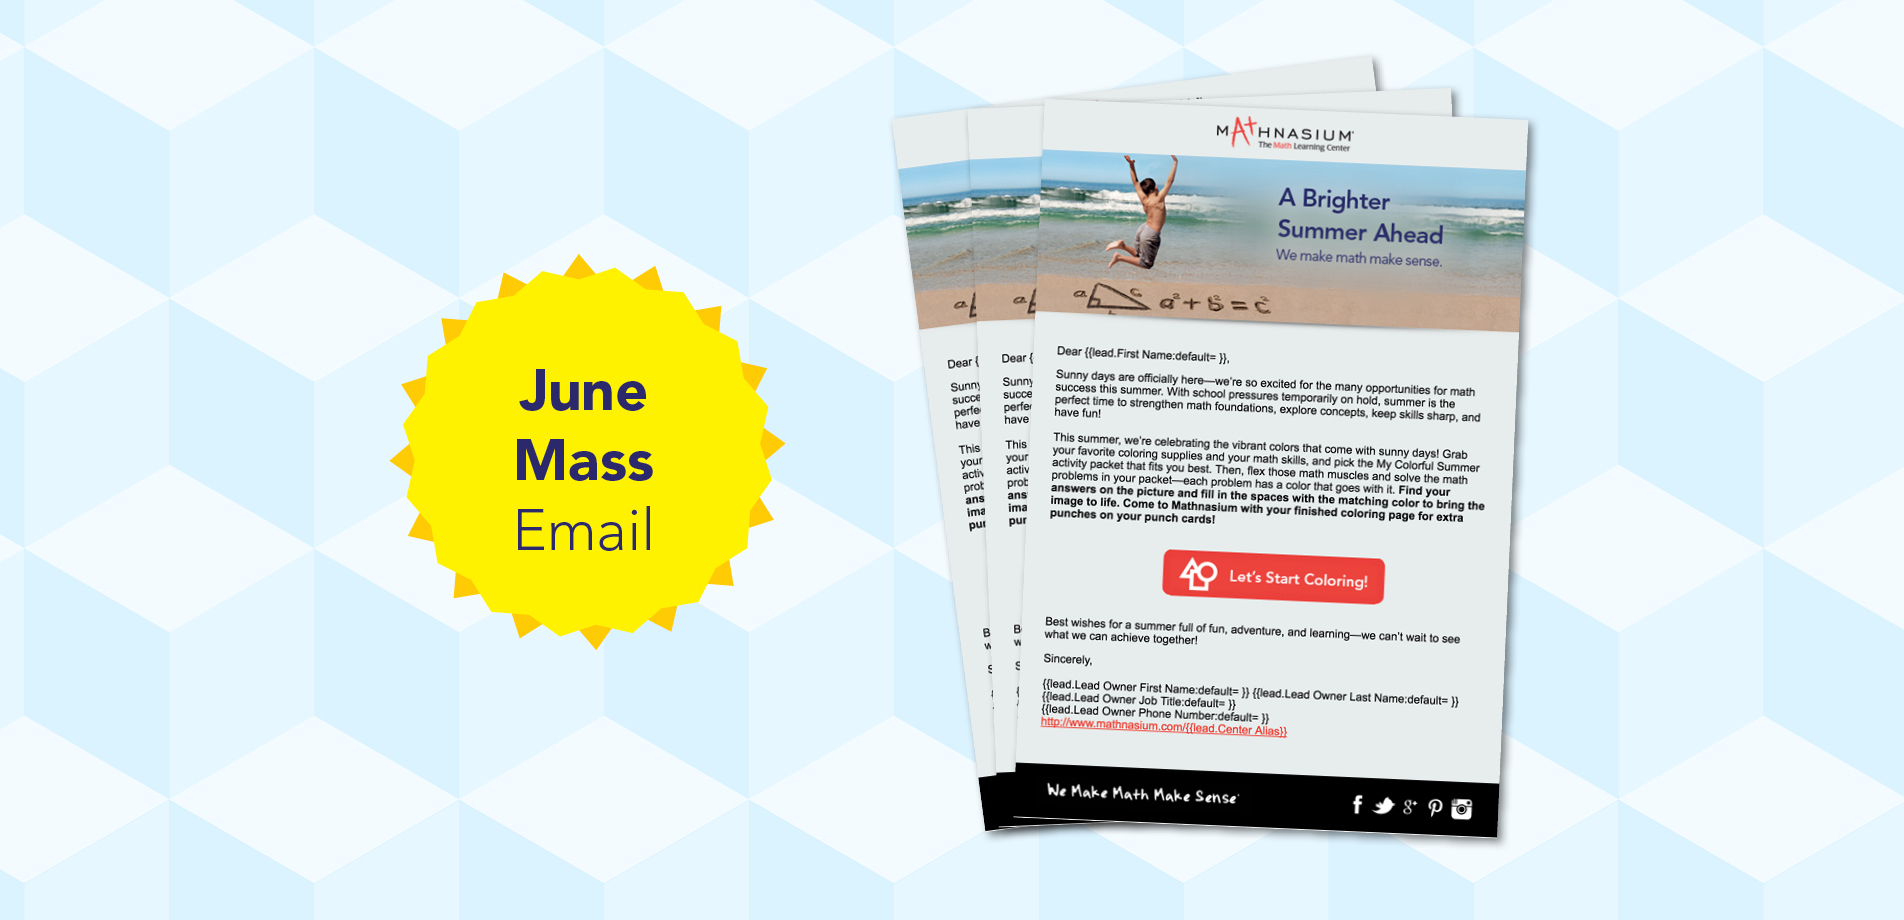 Sample-Email-Mass-Email-June-2016